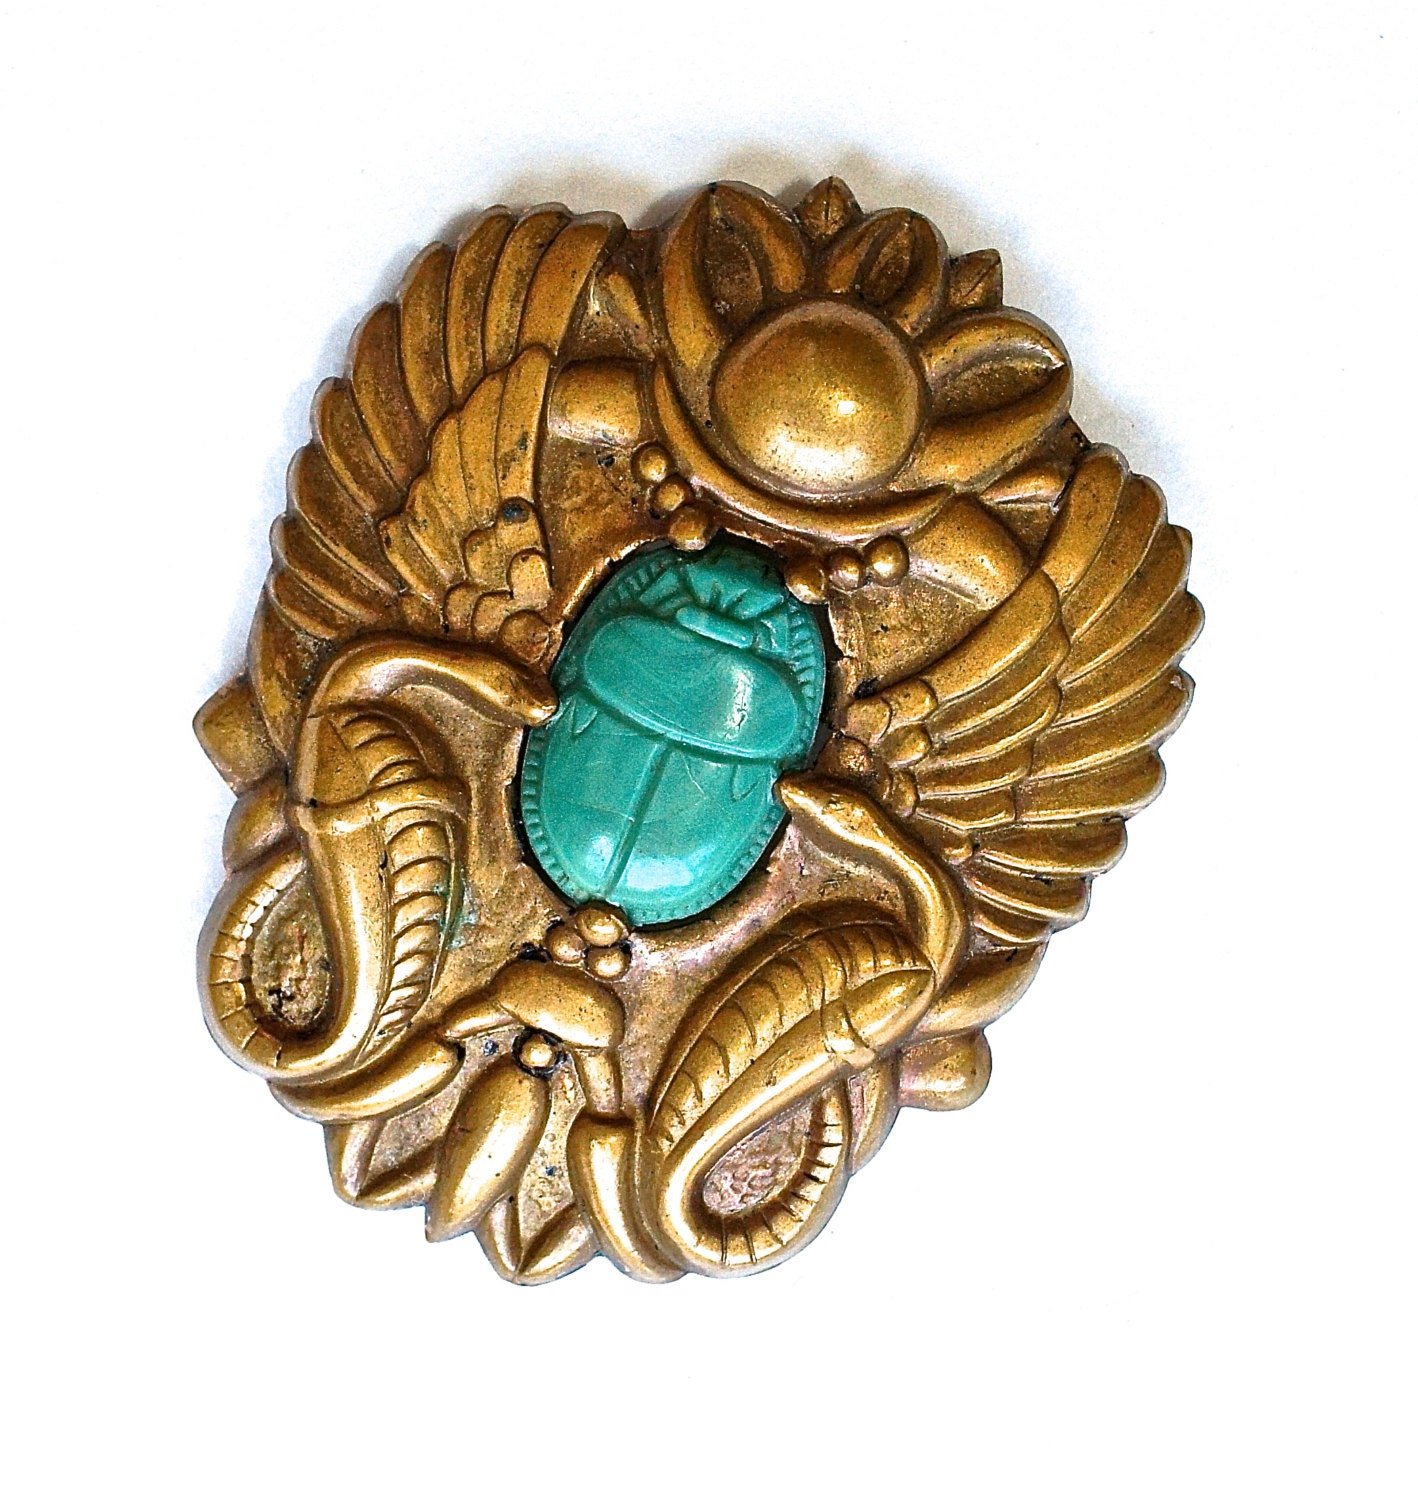 Egyptian Revival Winged Scarab Beetle Brooch by ...